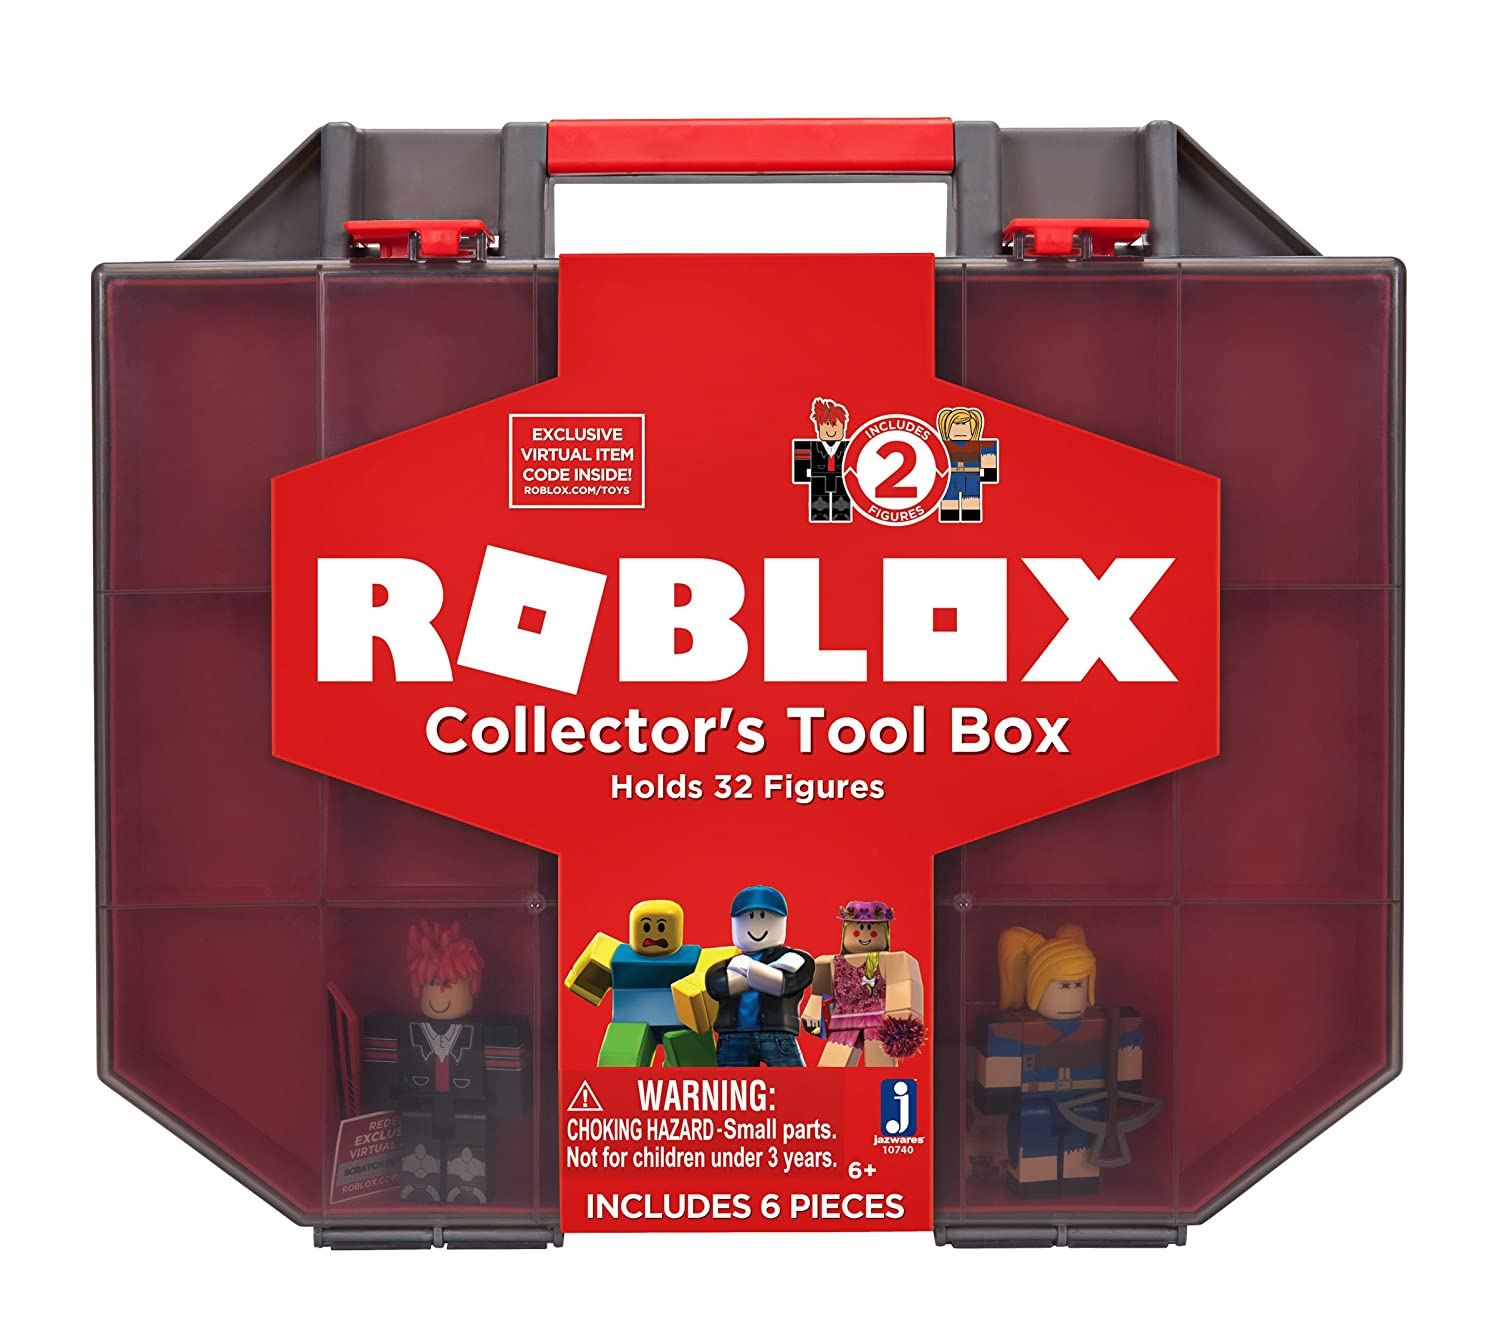 ROBLOX Toolkit 10740